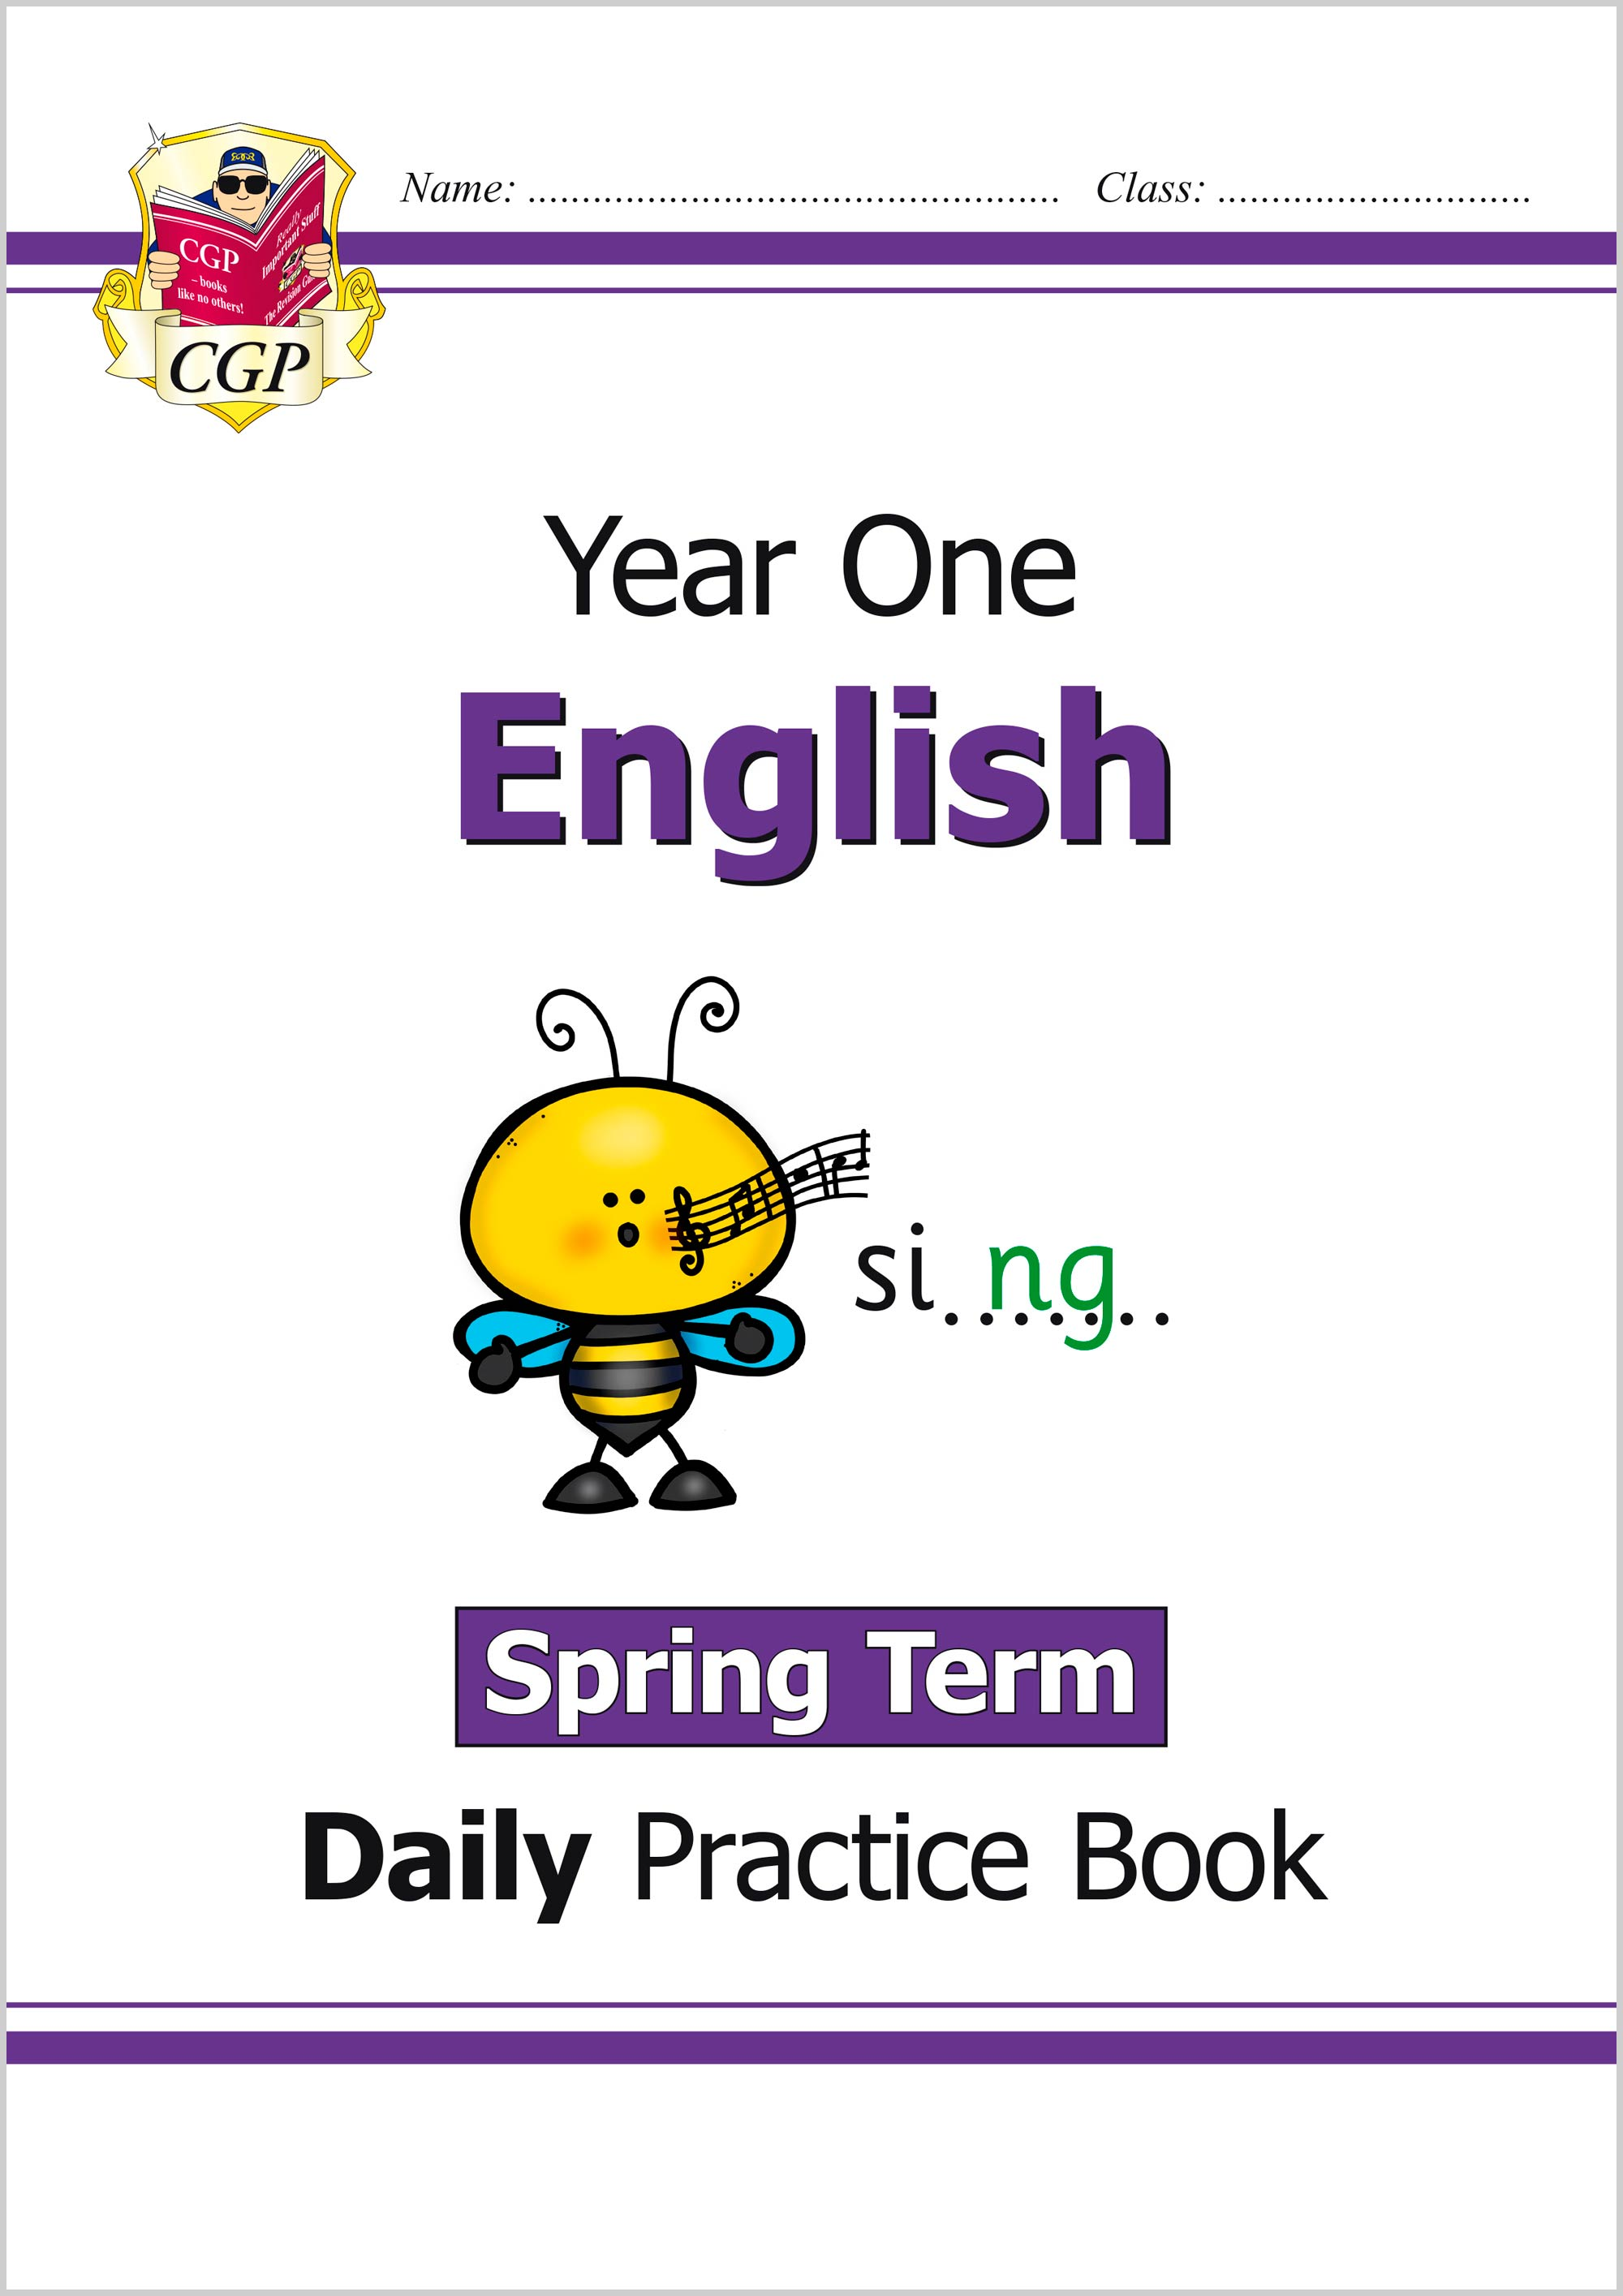 E1WSP11 - New KS1 English Daily Practice Book: Year 1 - Spring Term